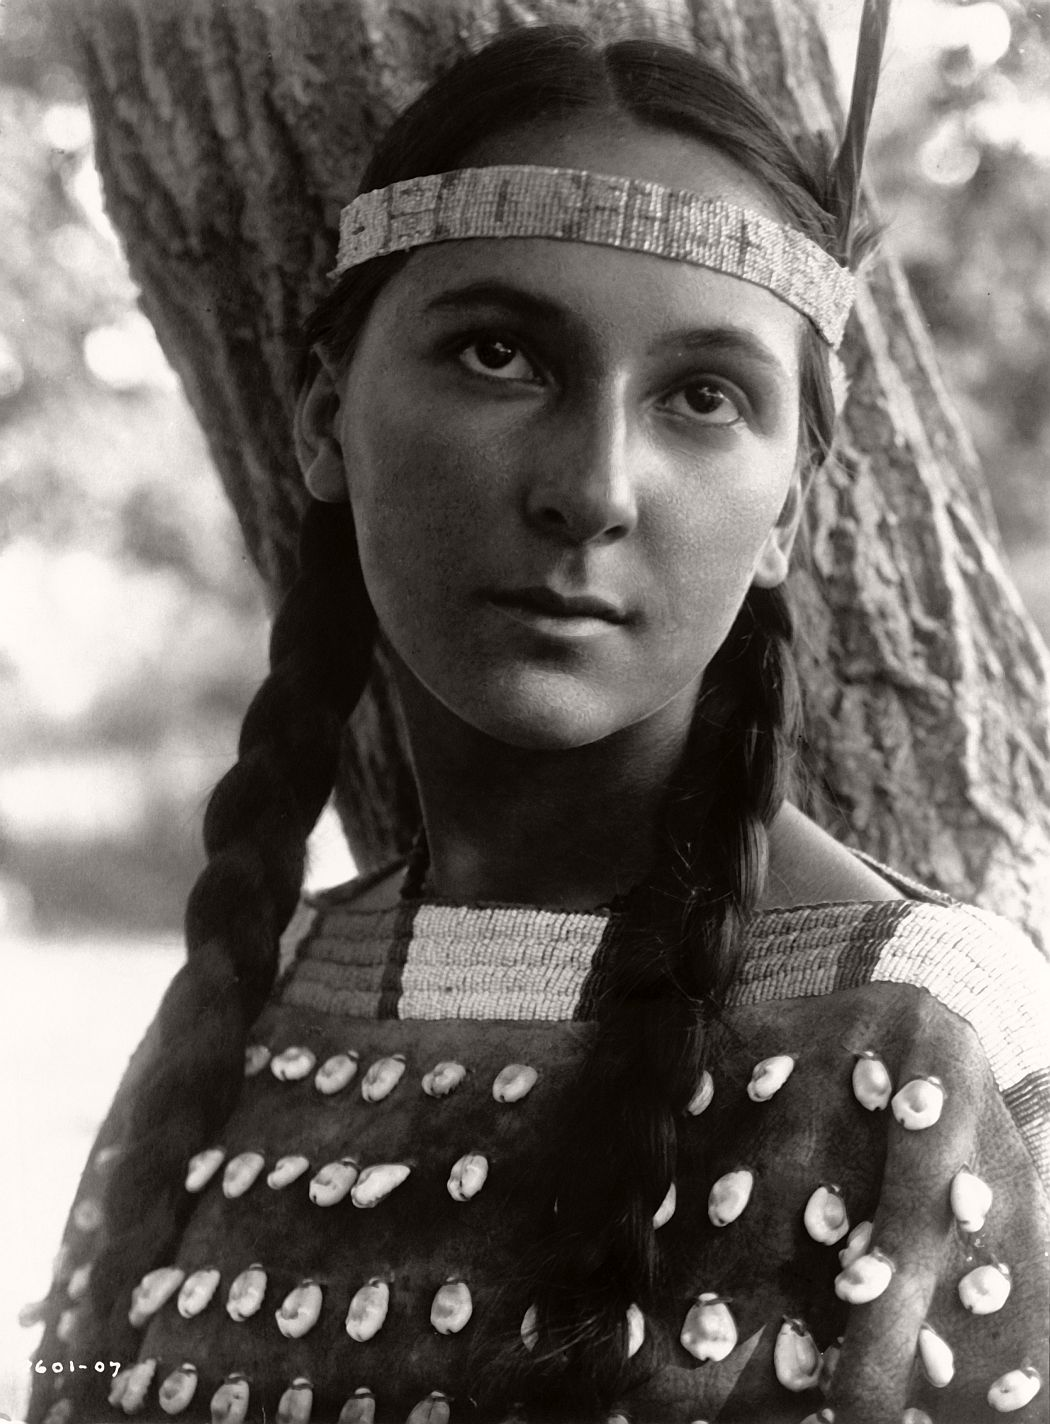 """""""Lucille, portrait of Dakota woman standing in front of tree."""", 1907.  ©EDWARD S. CURTIS/LIBRARY OF CONGRESS"""